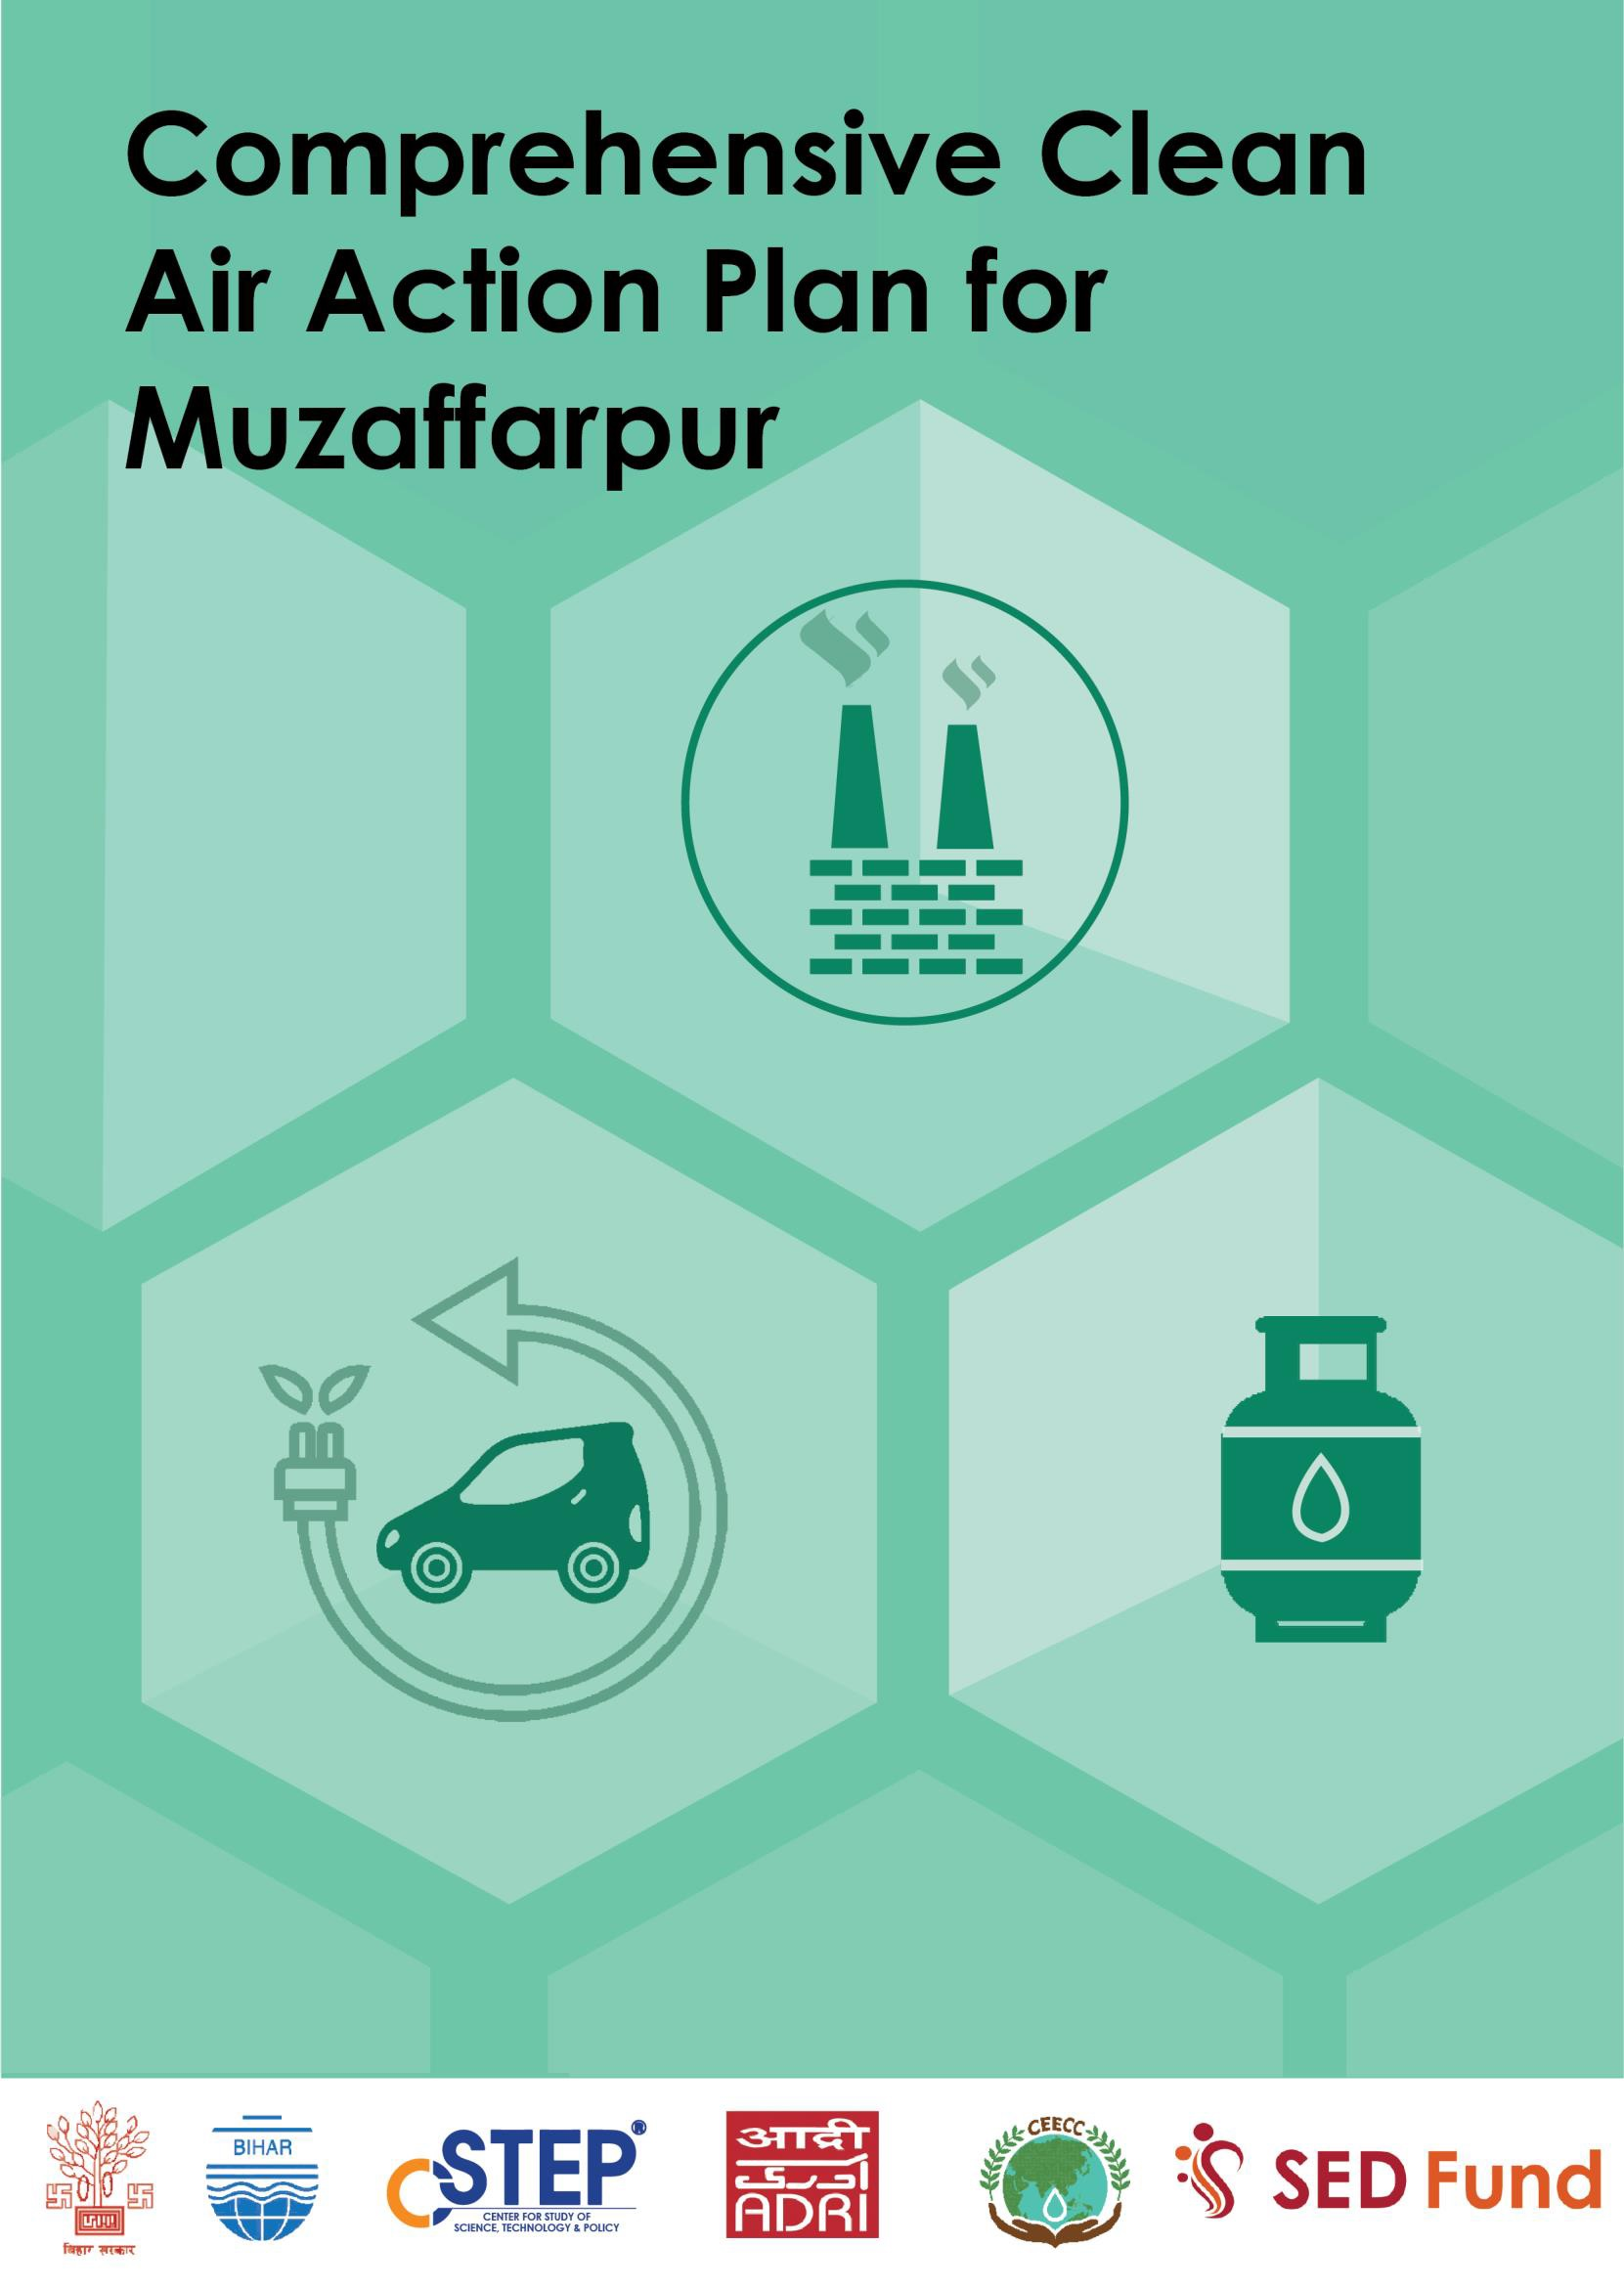 Comprehensive Clean Air Action Plan for Muzaffarpur